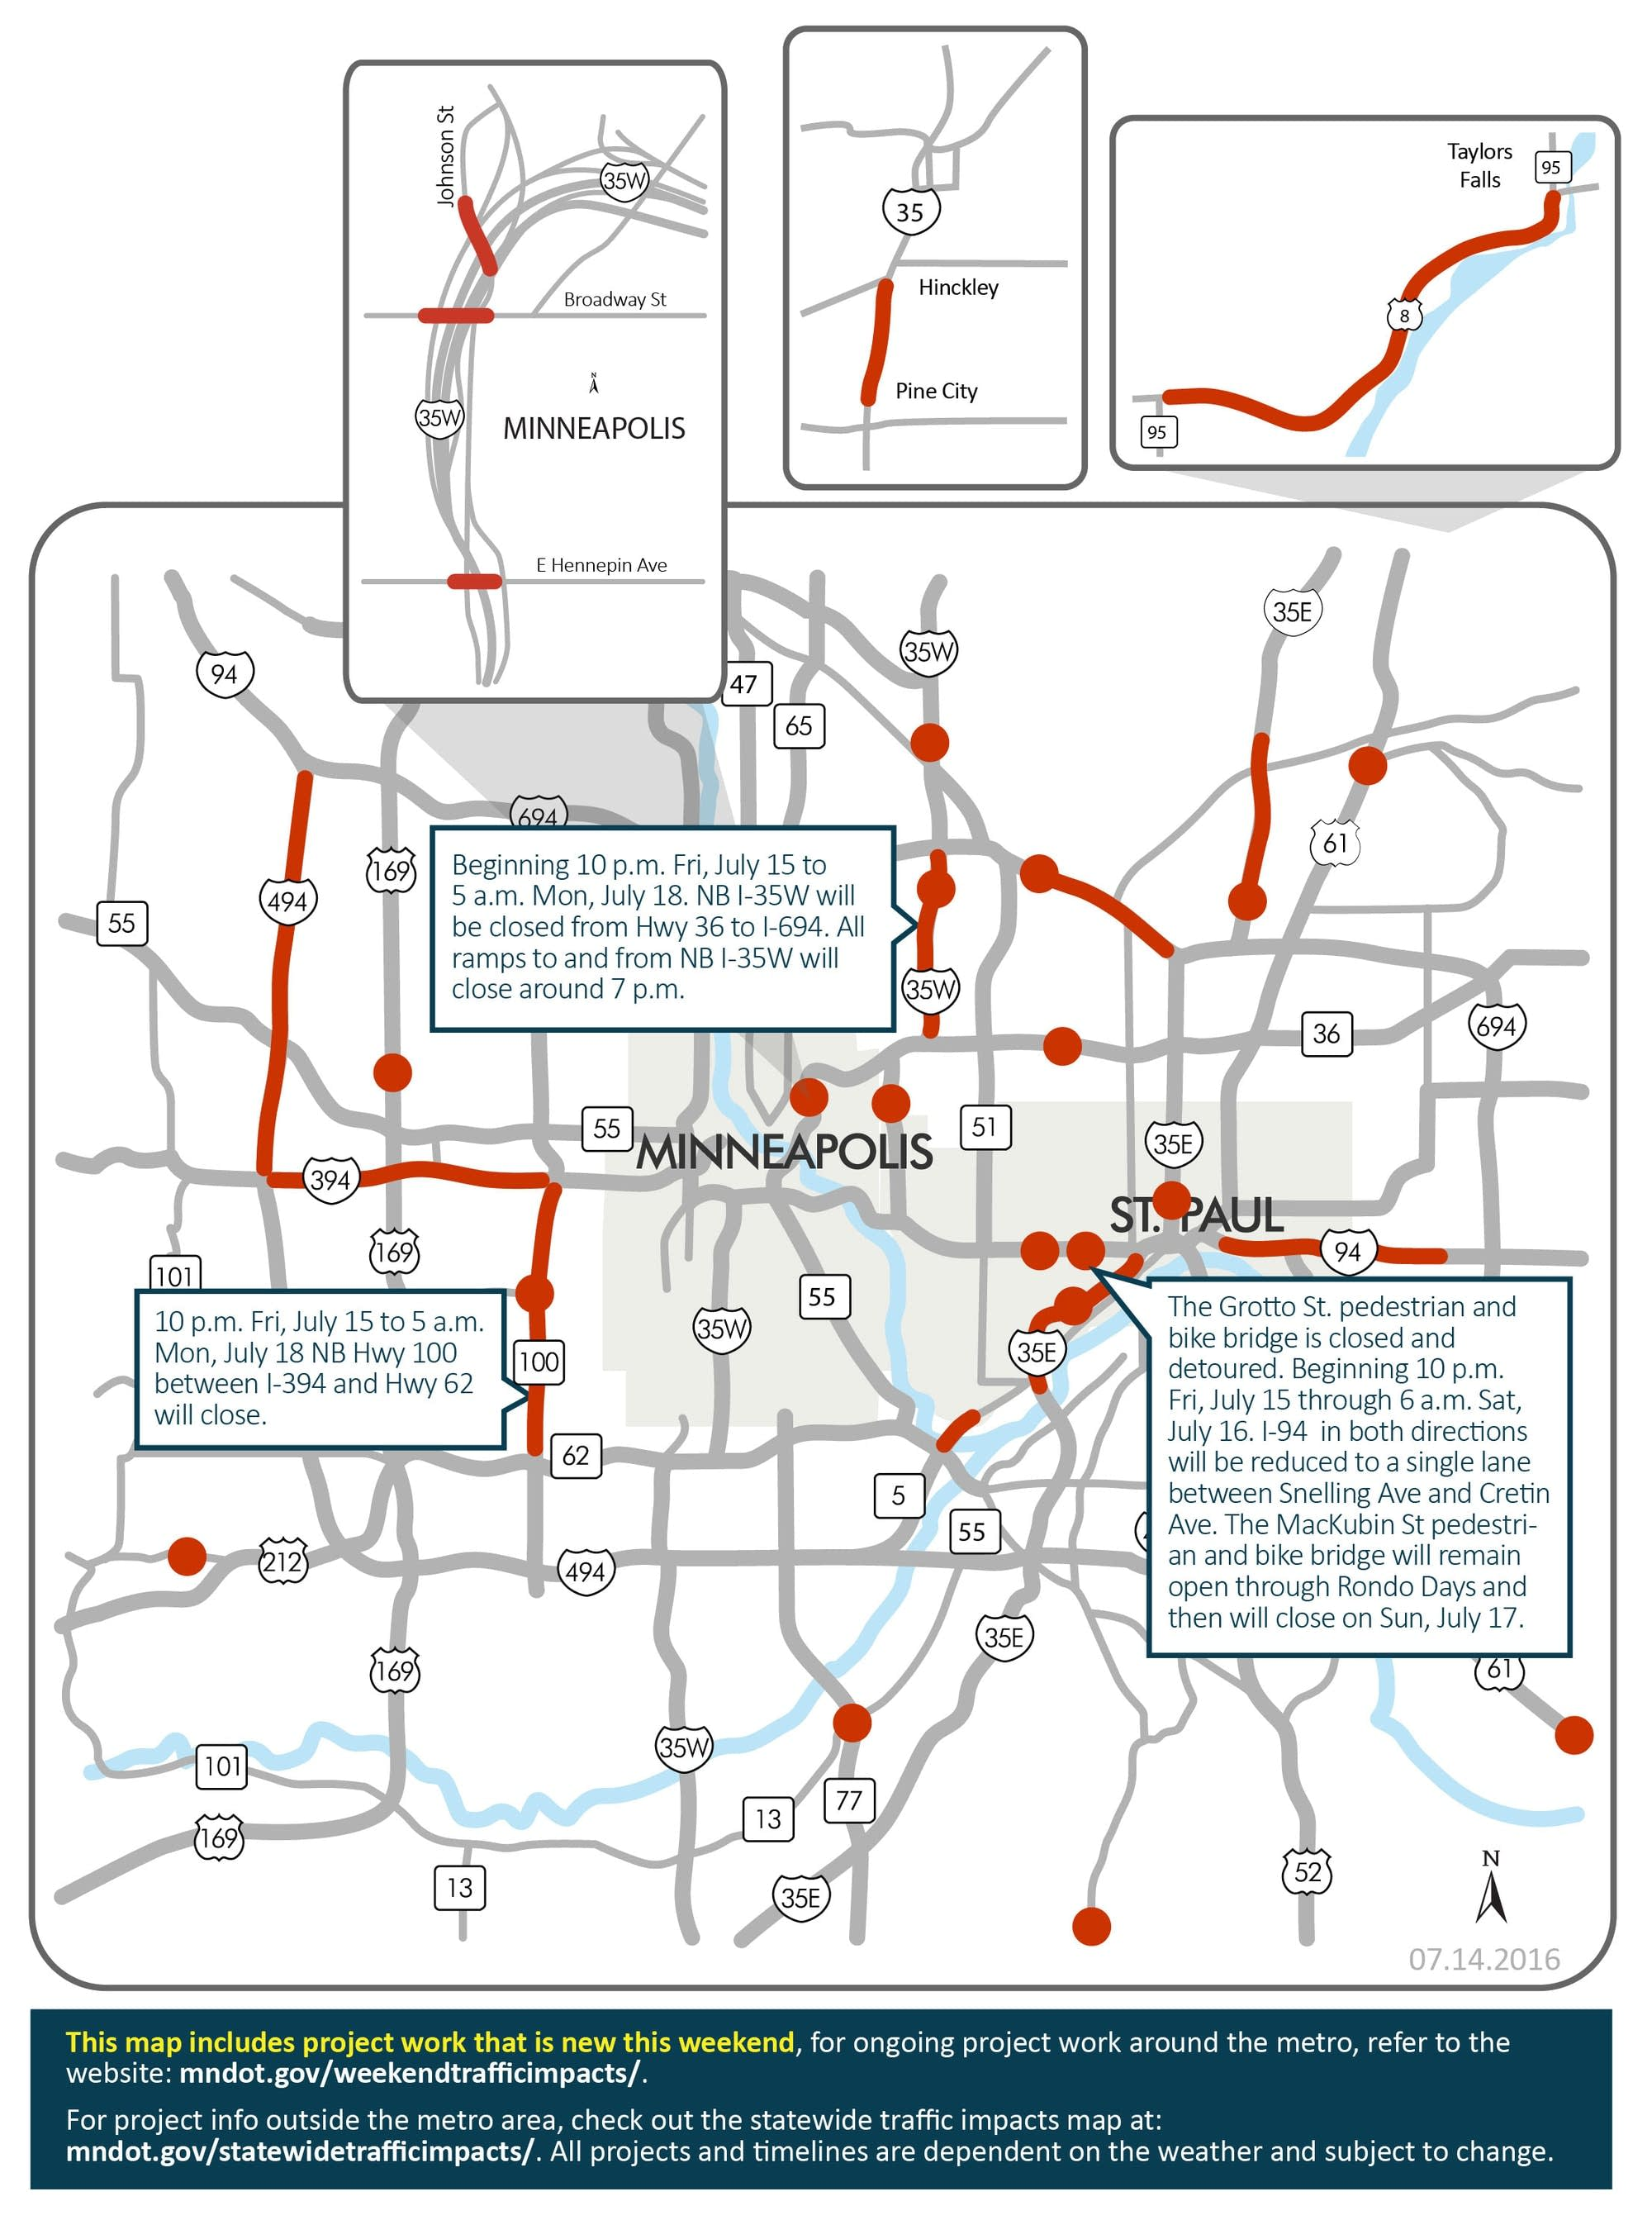 St Paul Traffic Map.Highway 100 North I 35w Closures Top Weekend Road Woes Mpr News